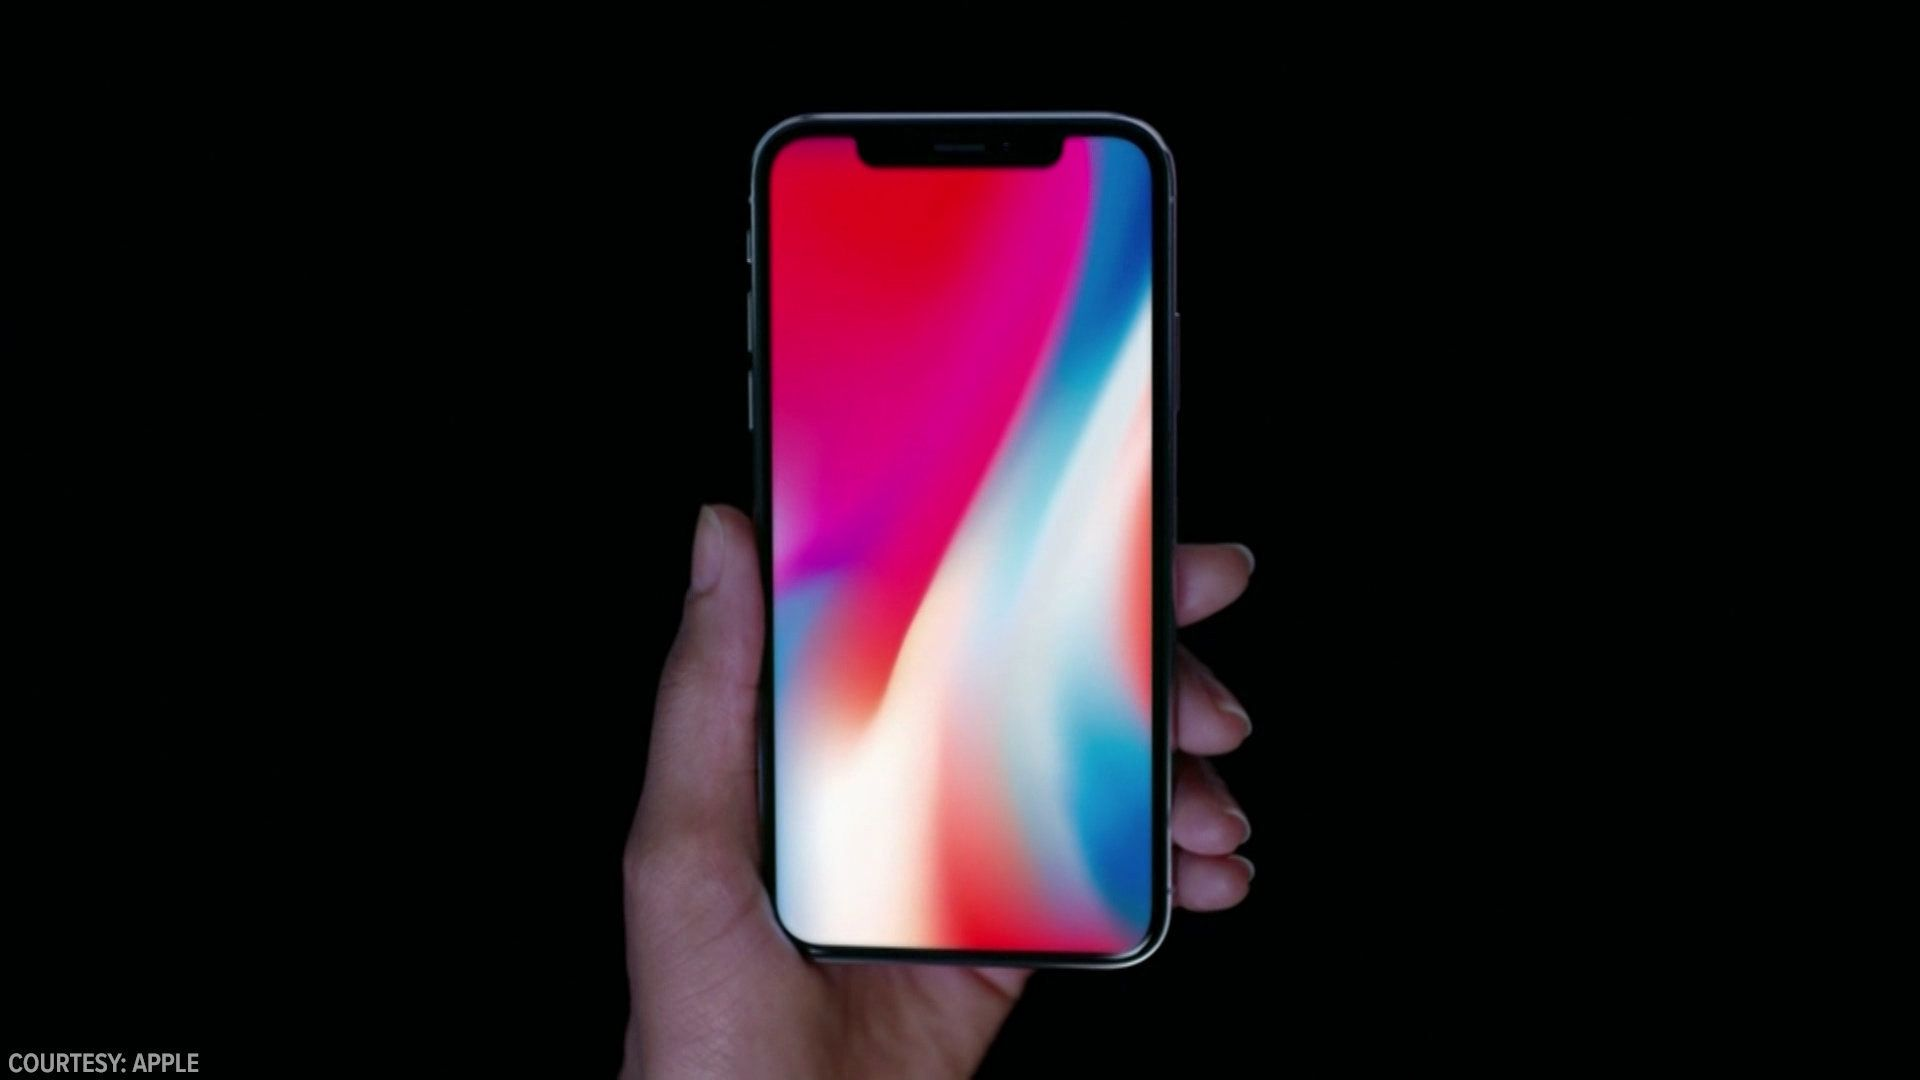 Apple has officially unveiled its iPhone X